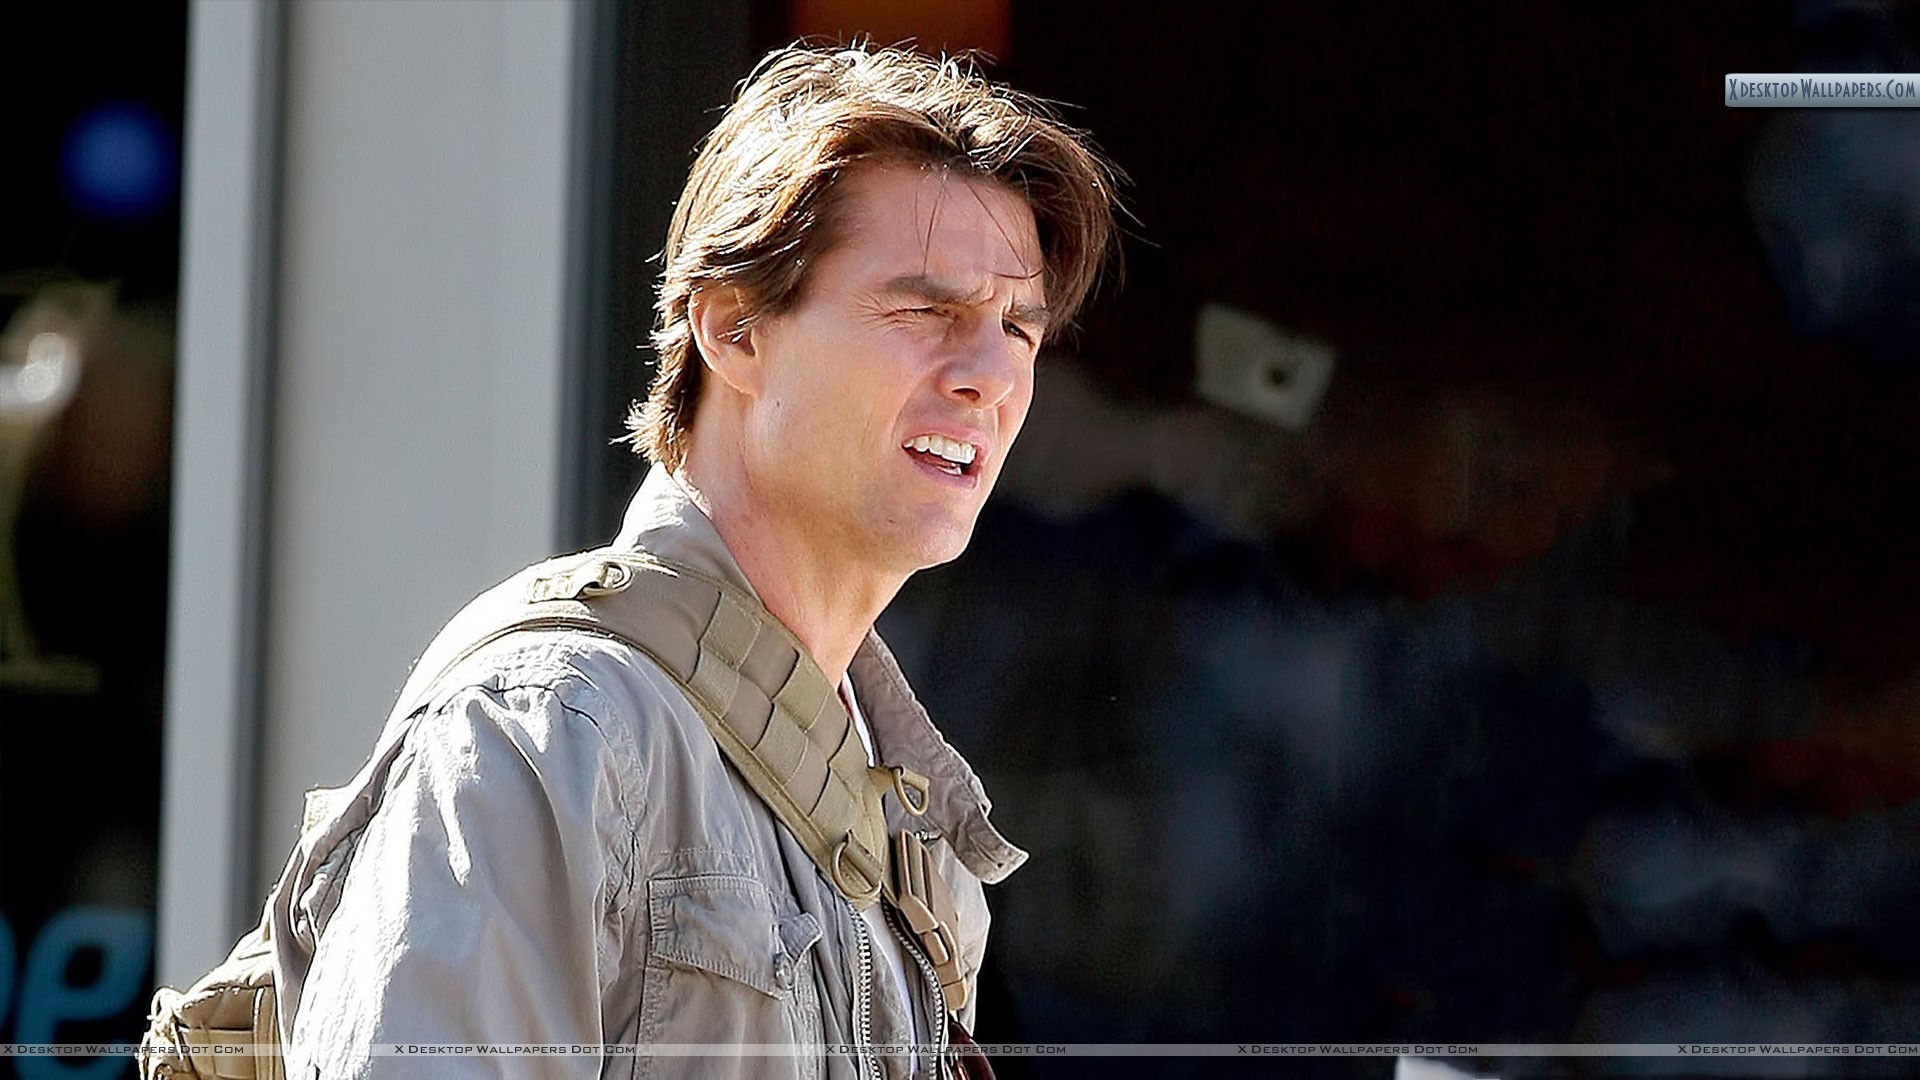 Top 10 Tom Cruise Hairstyles To Try Out LivingHours 1920x1080